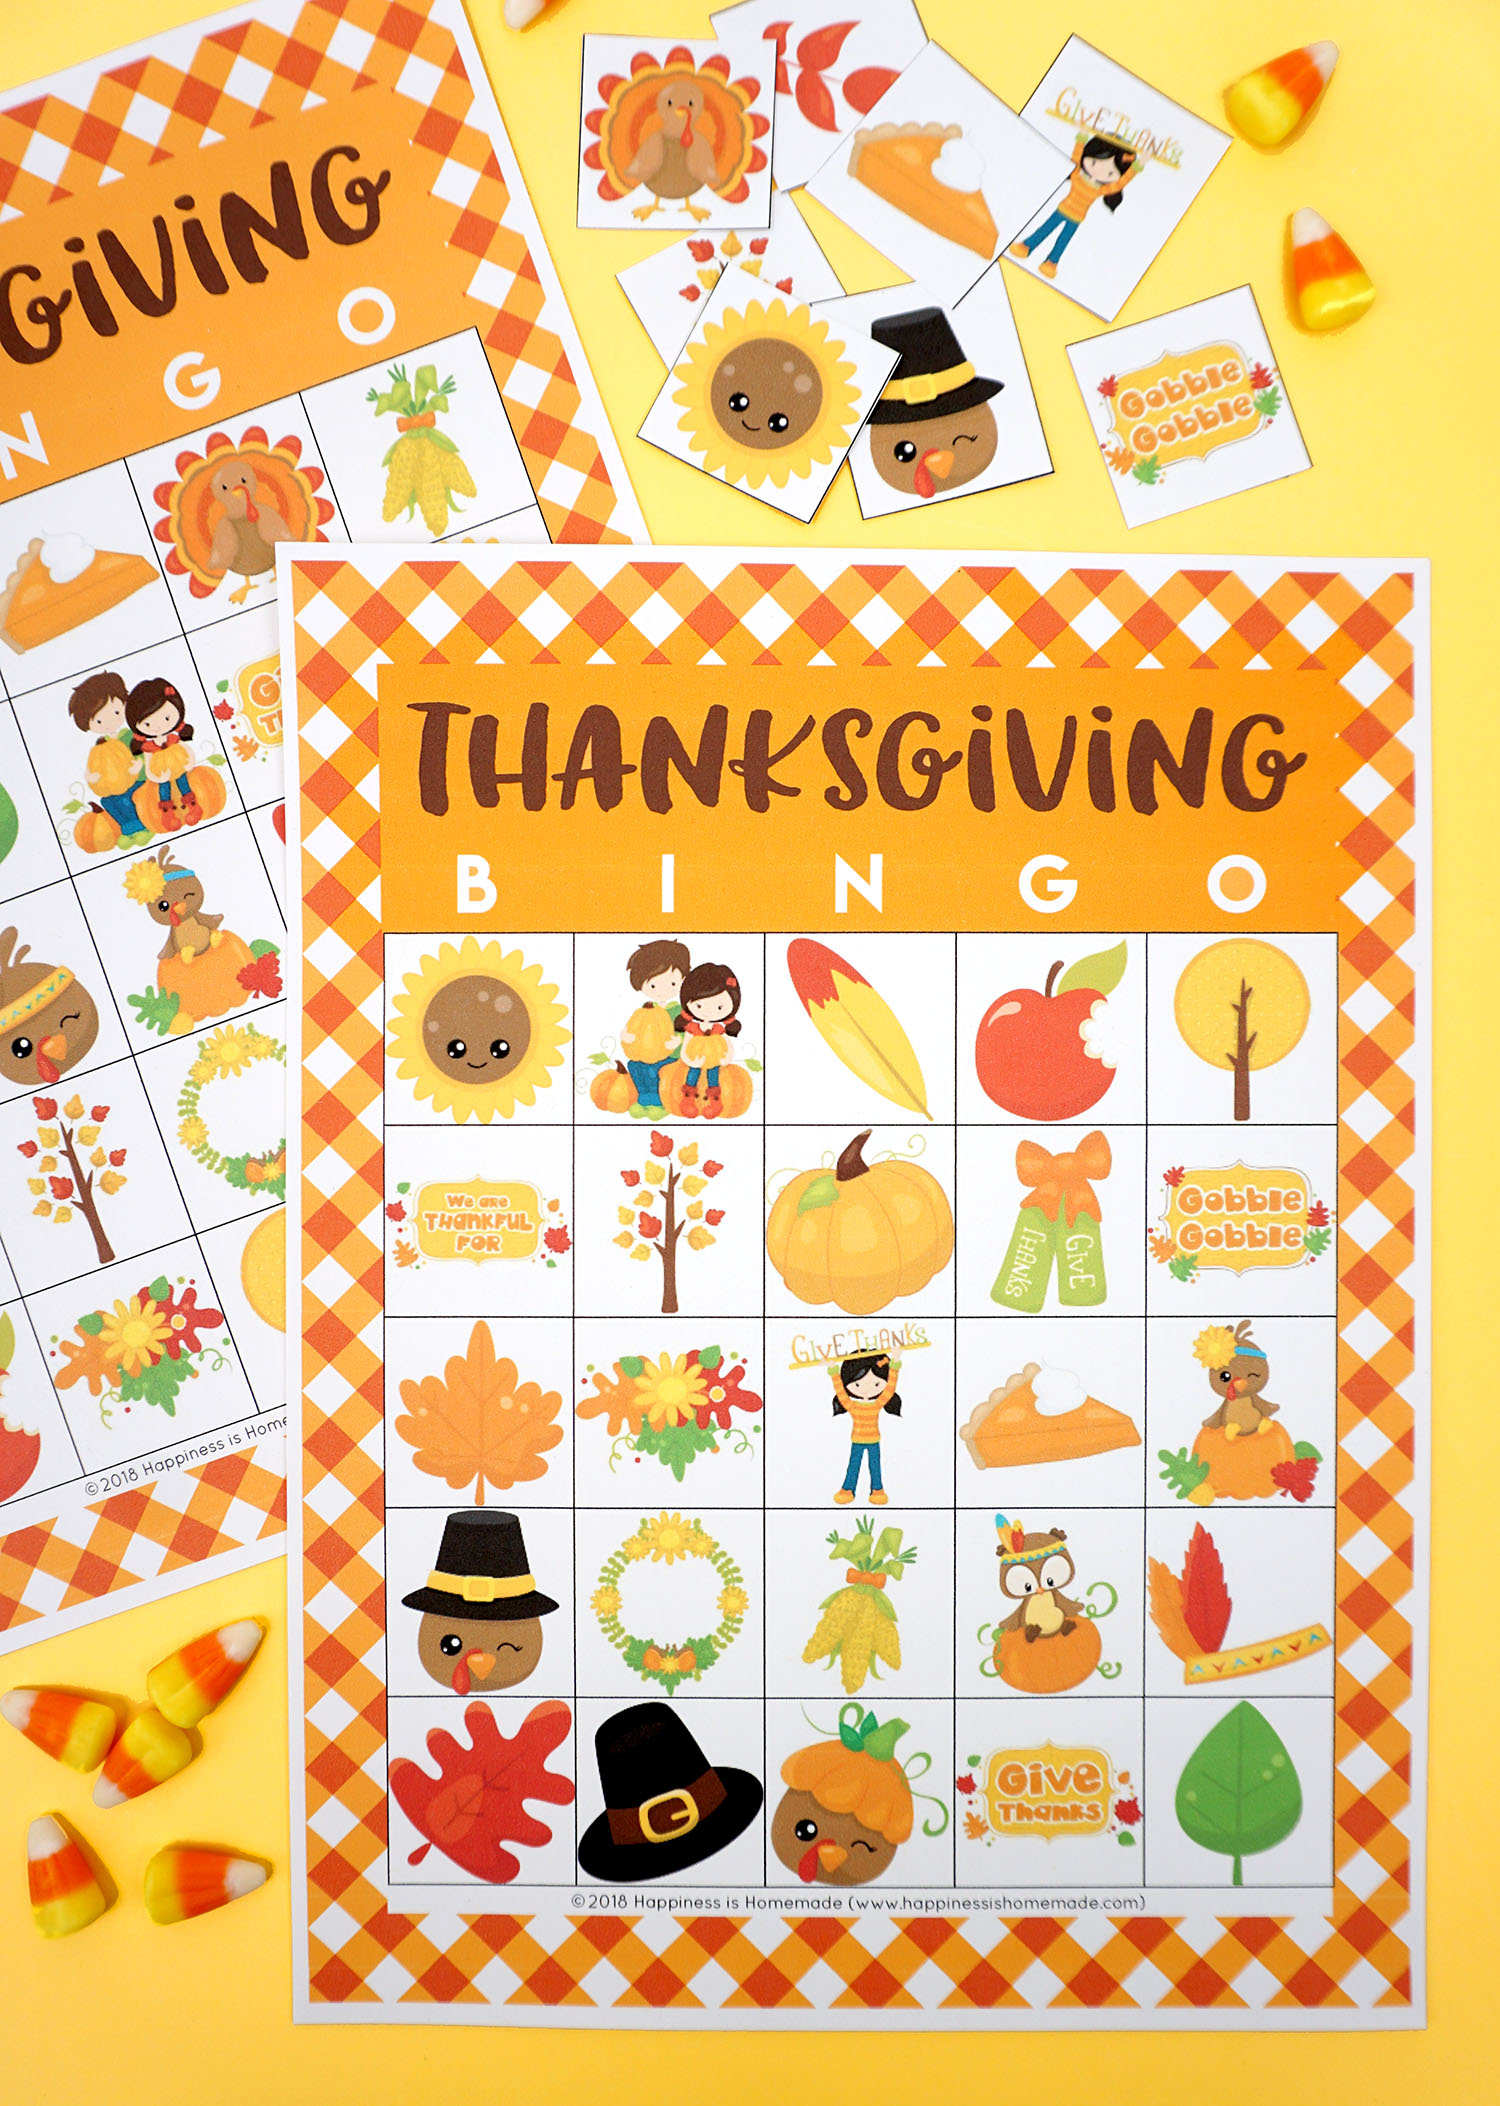 Free Printable Thanksgiving Bingo Cards - Happiness Is Homemade